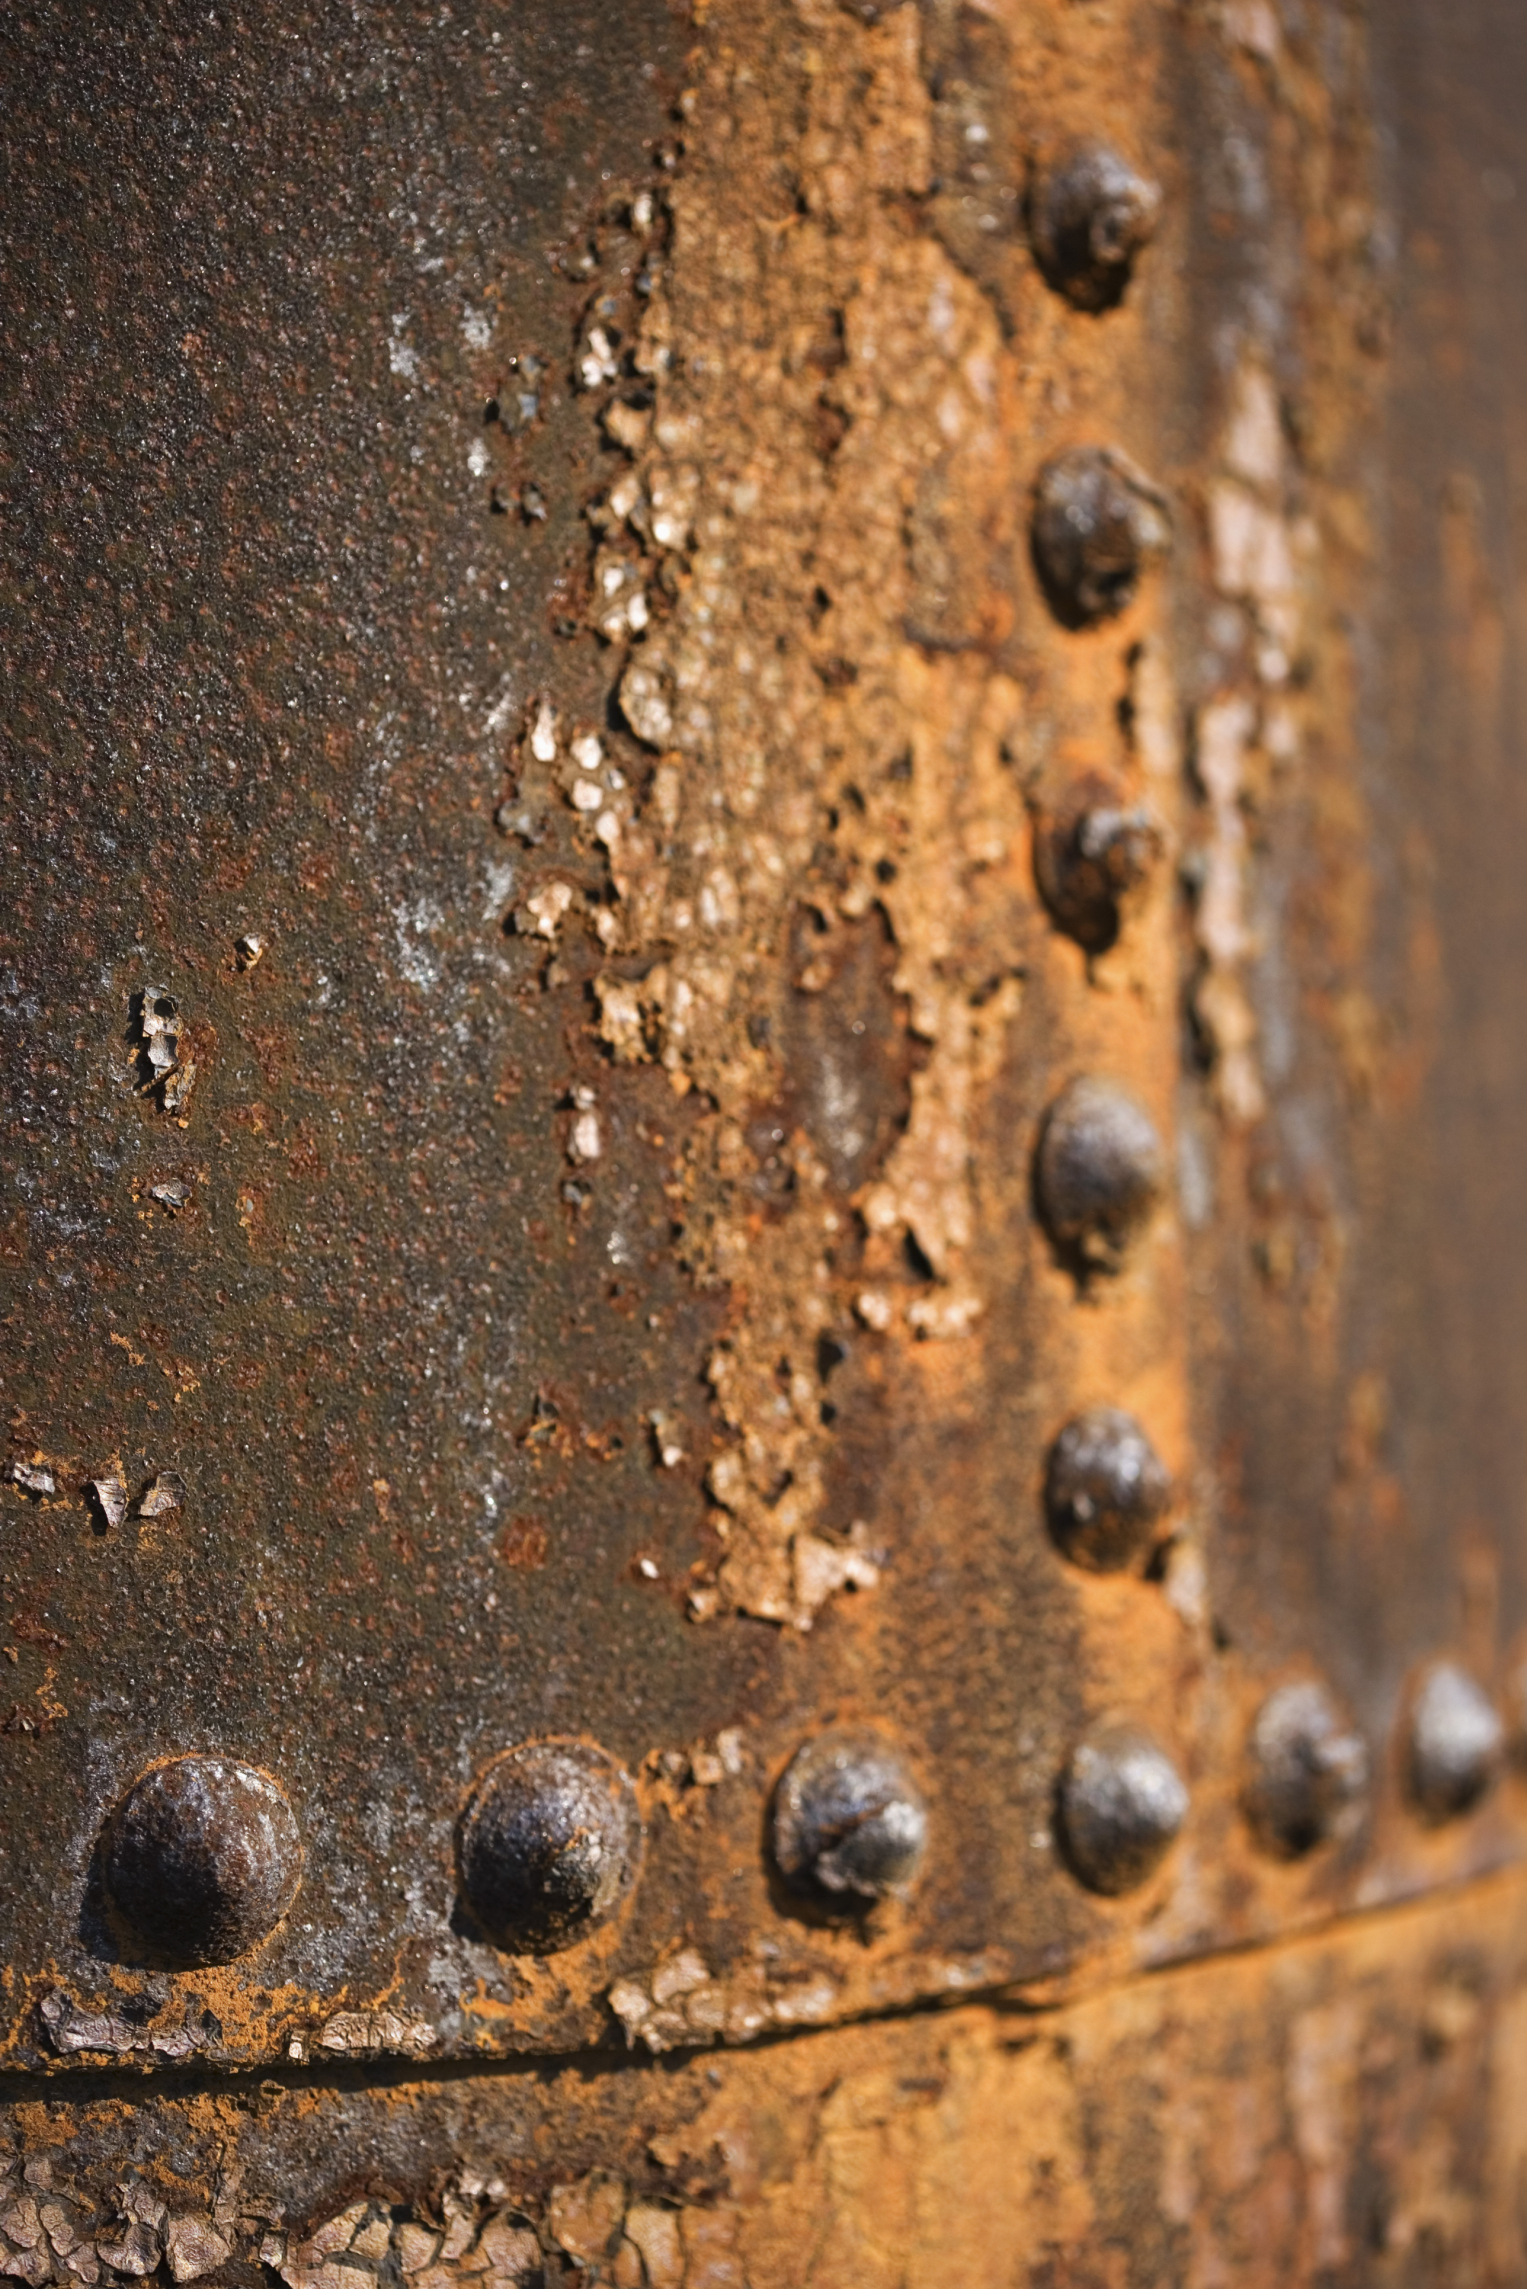 How Does Rust Form?